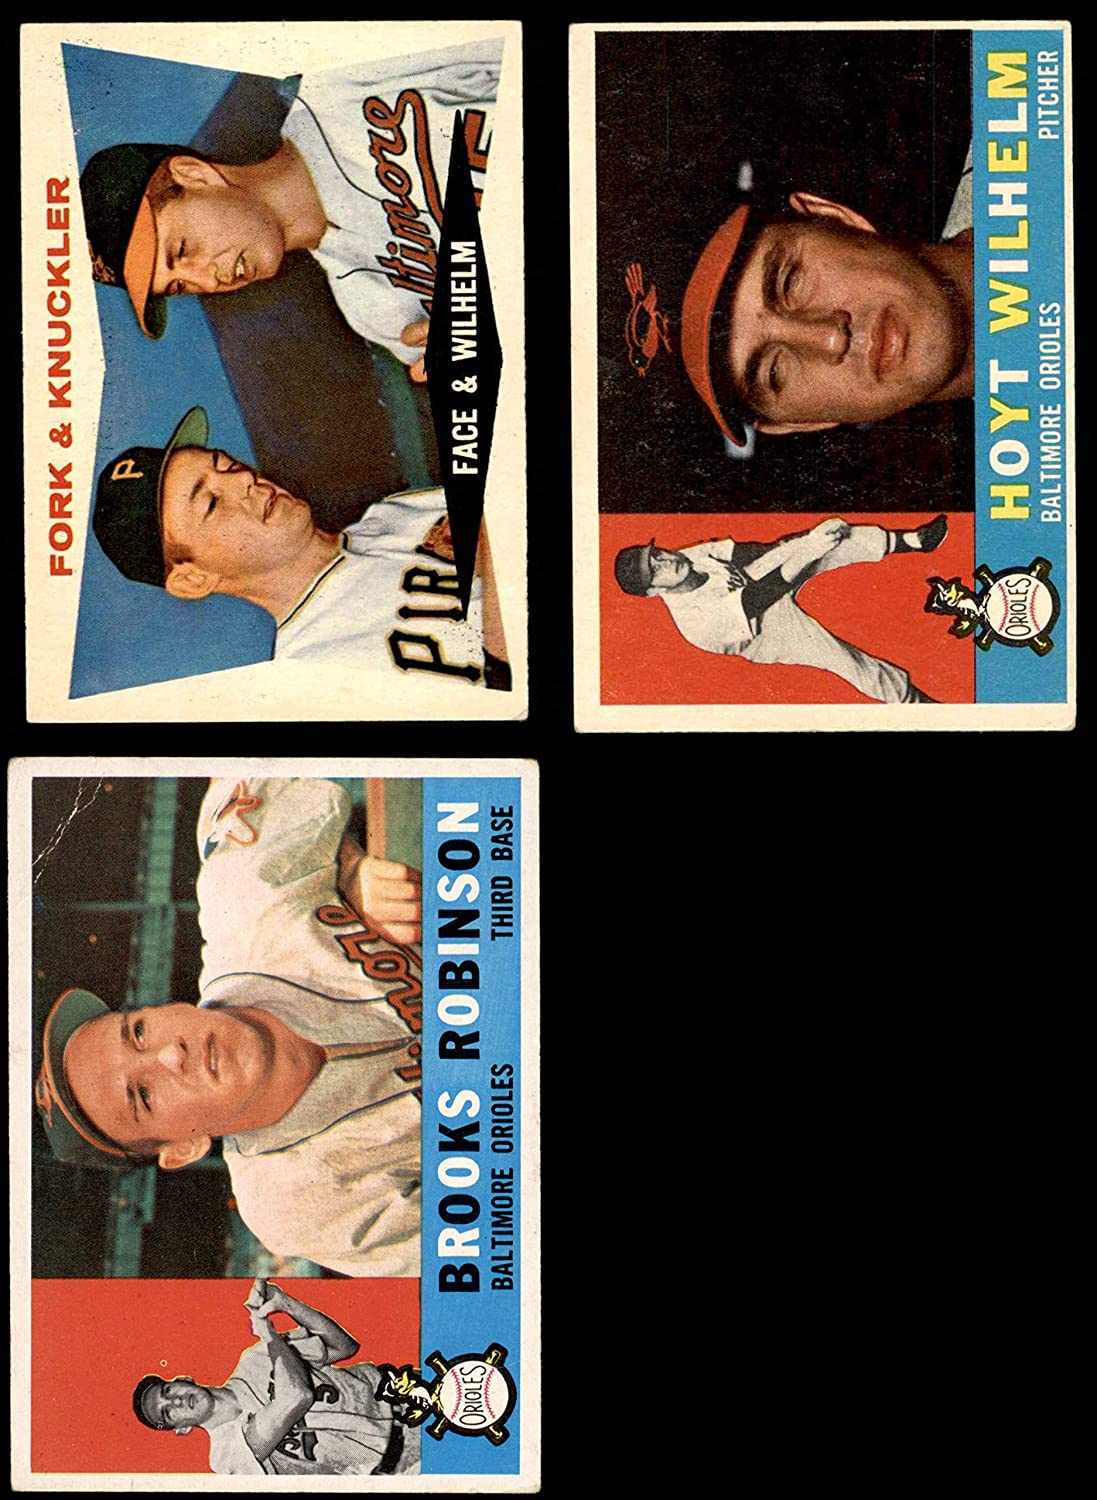 1960 Topps Baltimore Orioles Near Team Set Baltimore Orioles (Baseball Set) Dean's Cards 4 - VG/EX Orioles 91FRi-YykKLSL1500_